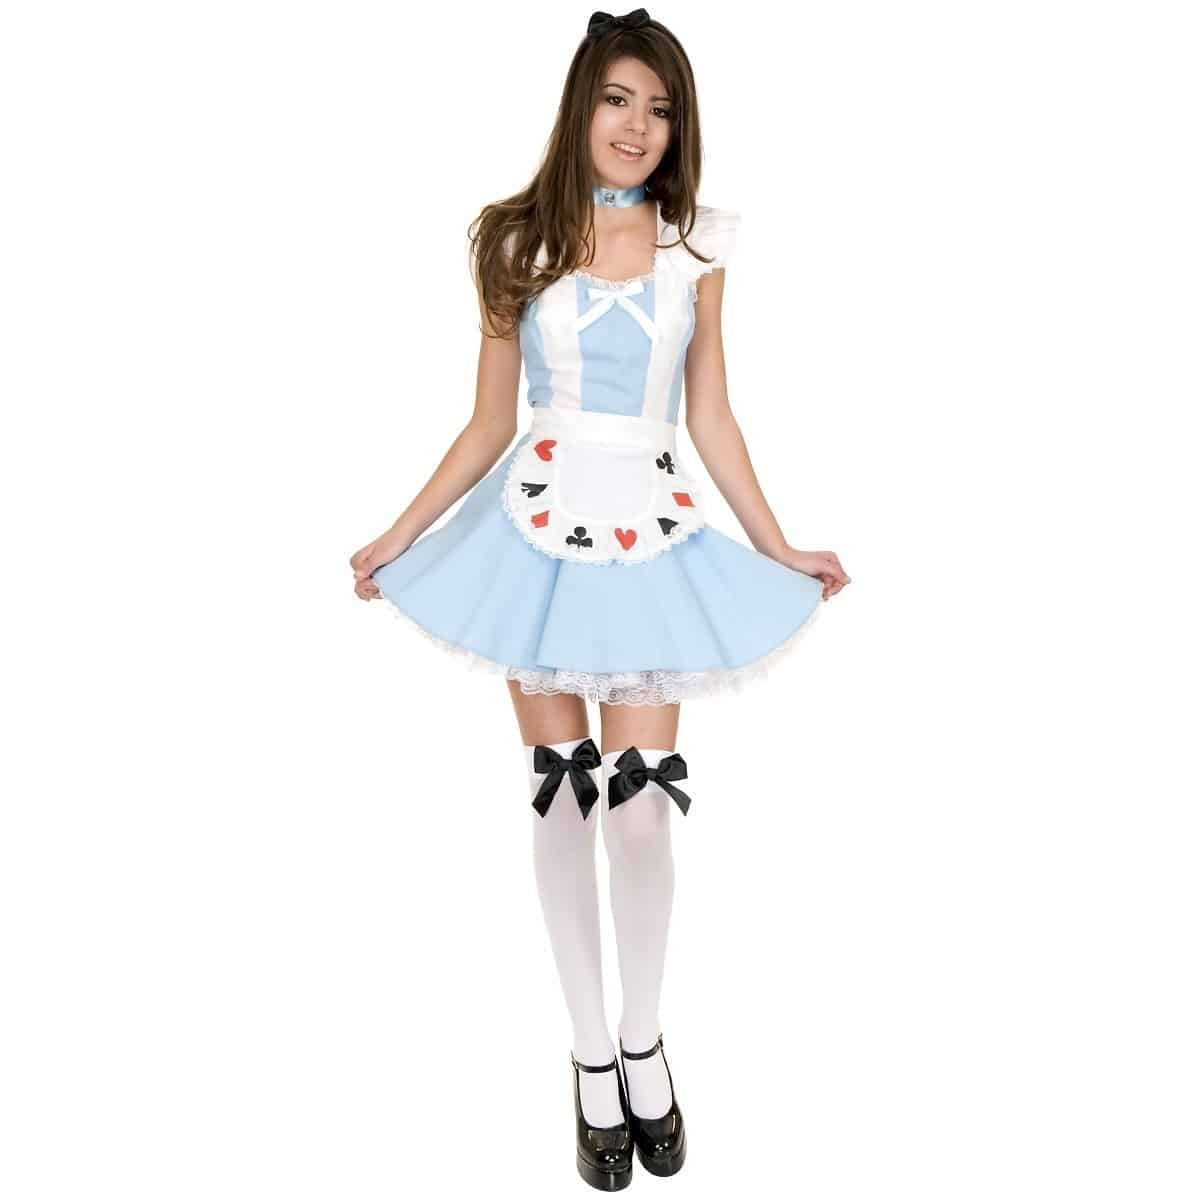 teen alice in wonderland costume - Skimpy Halloween Outfits